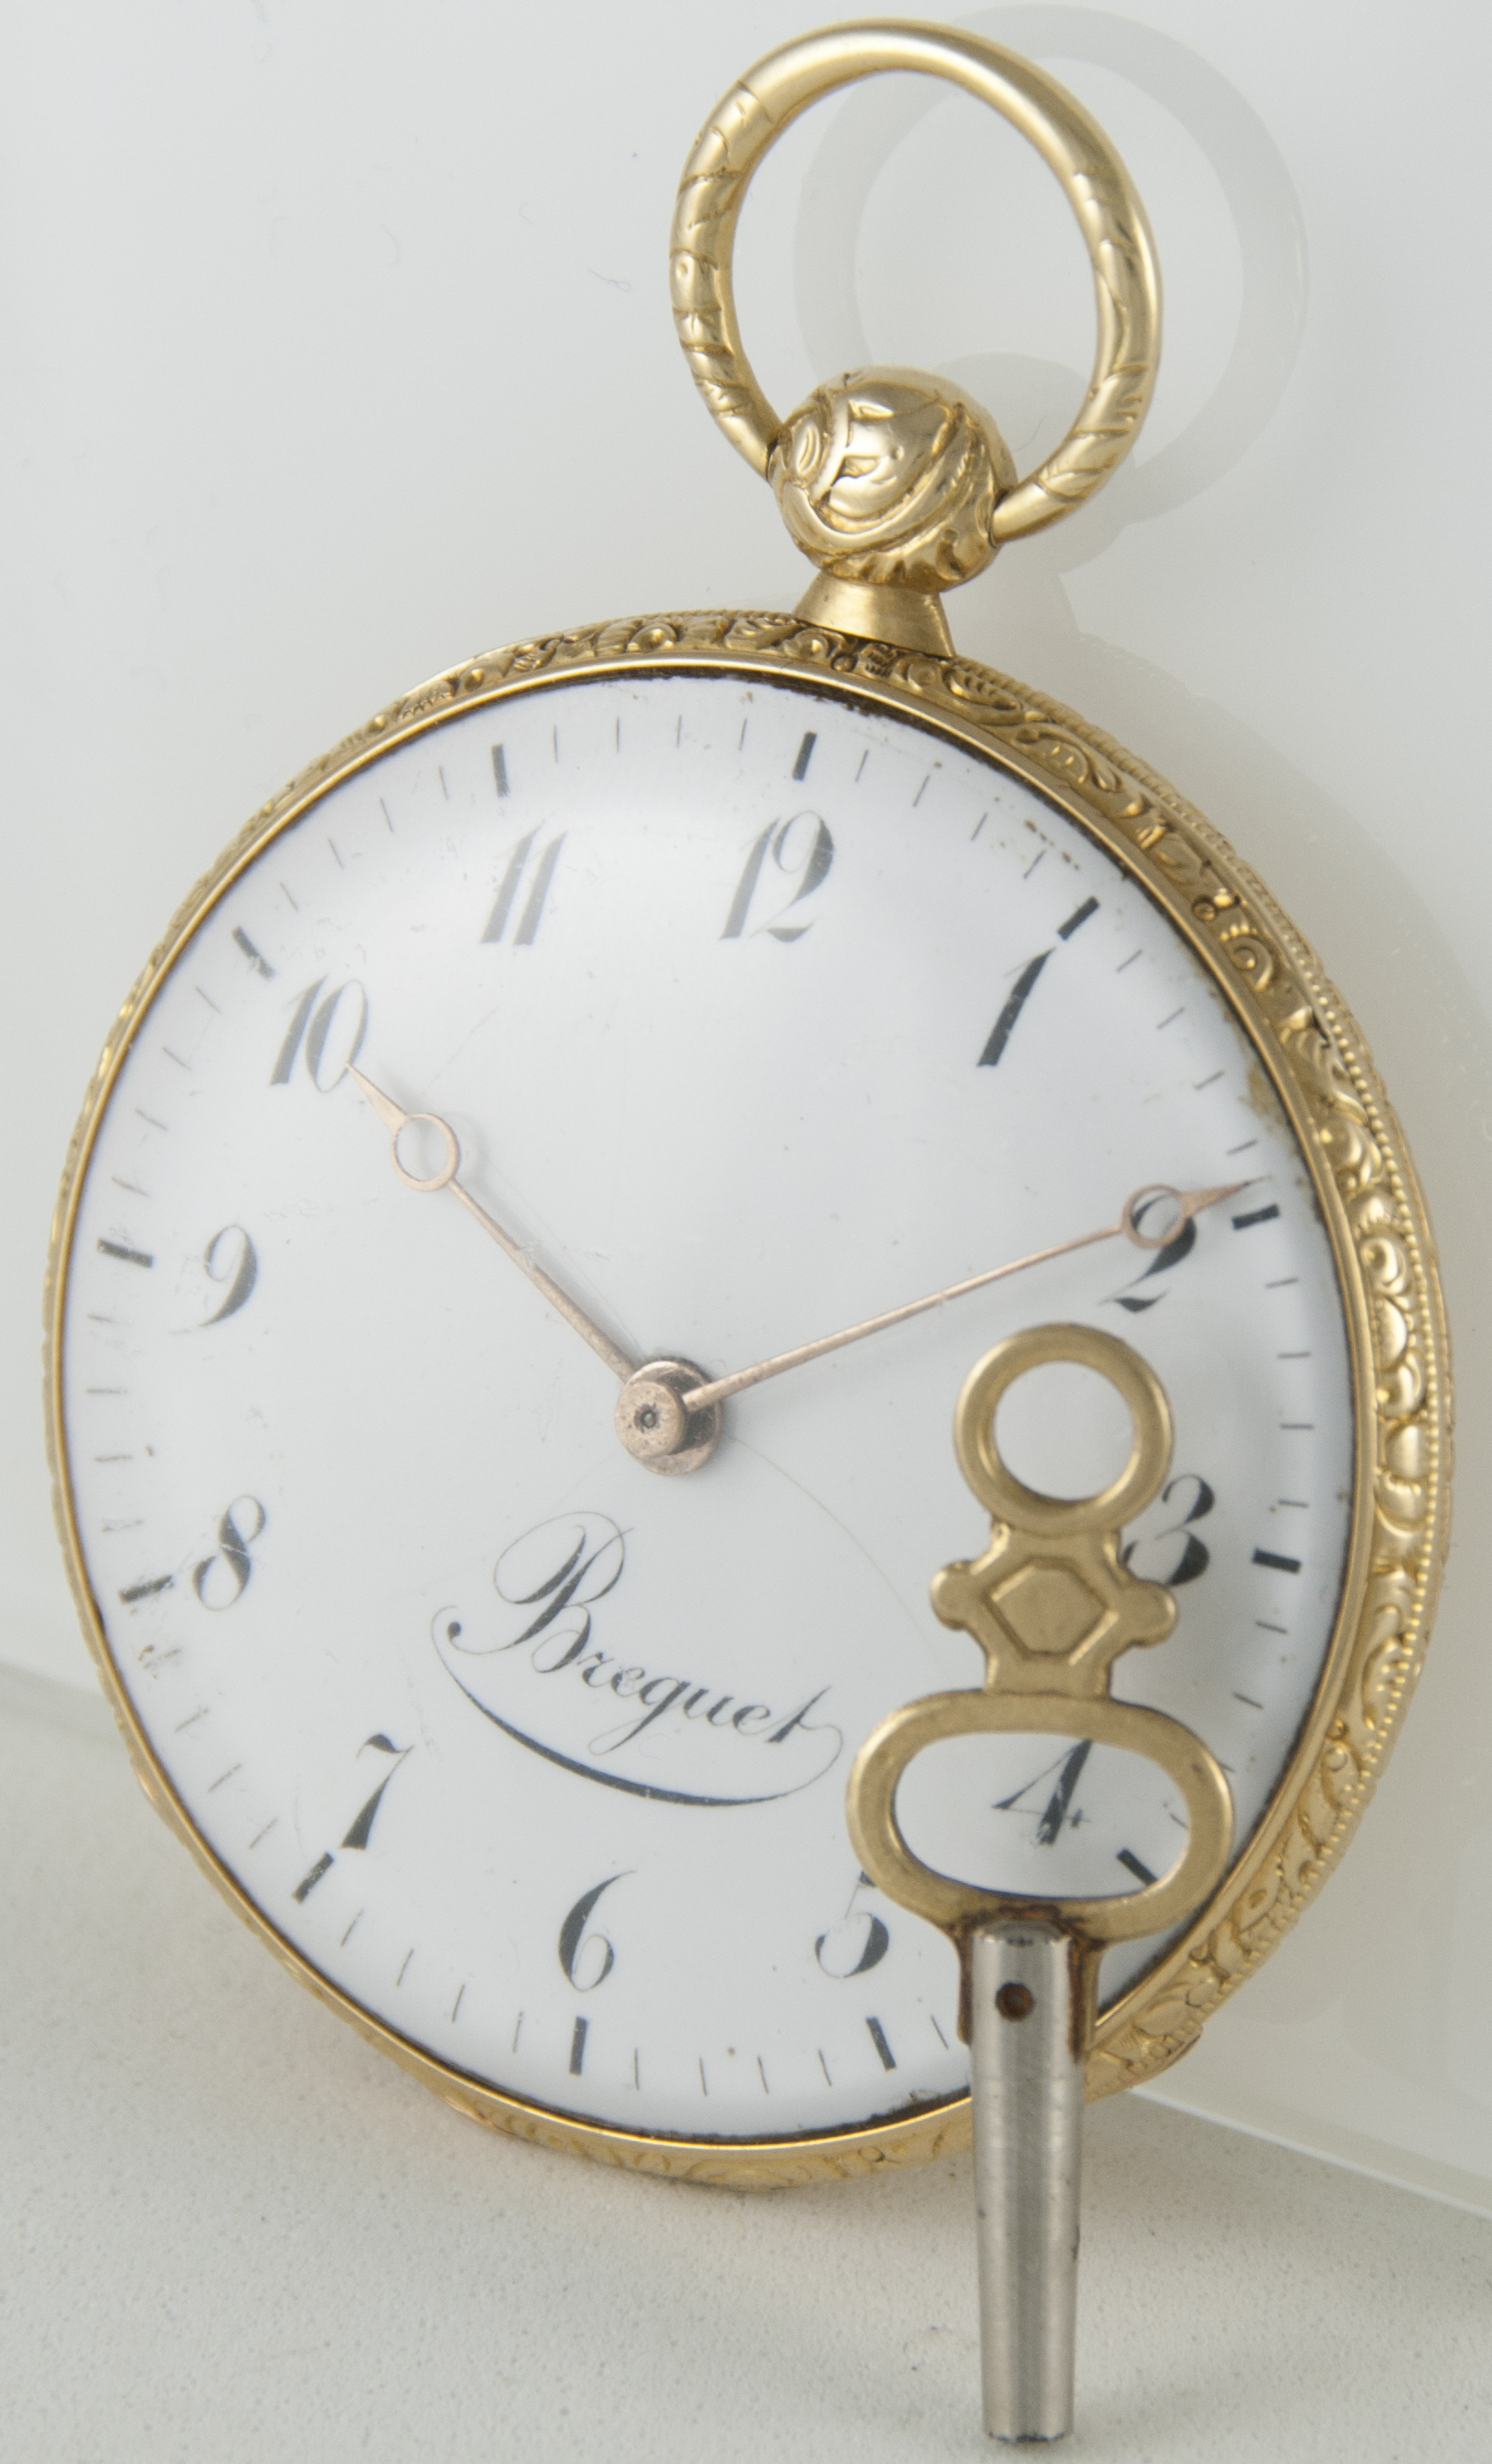 Name:  BREGUET_38mmX11mm-6.jpg